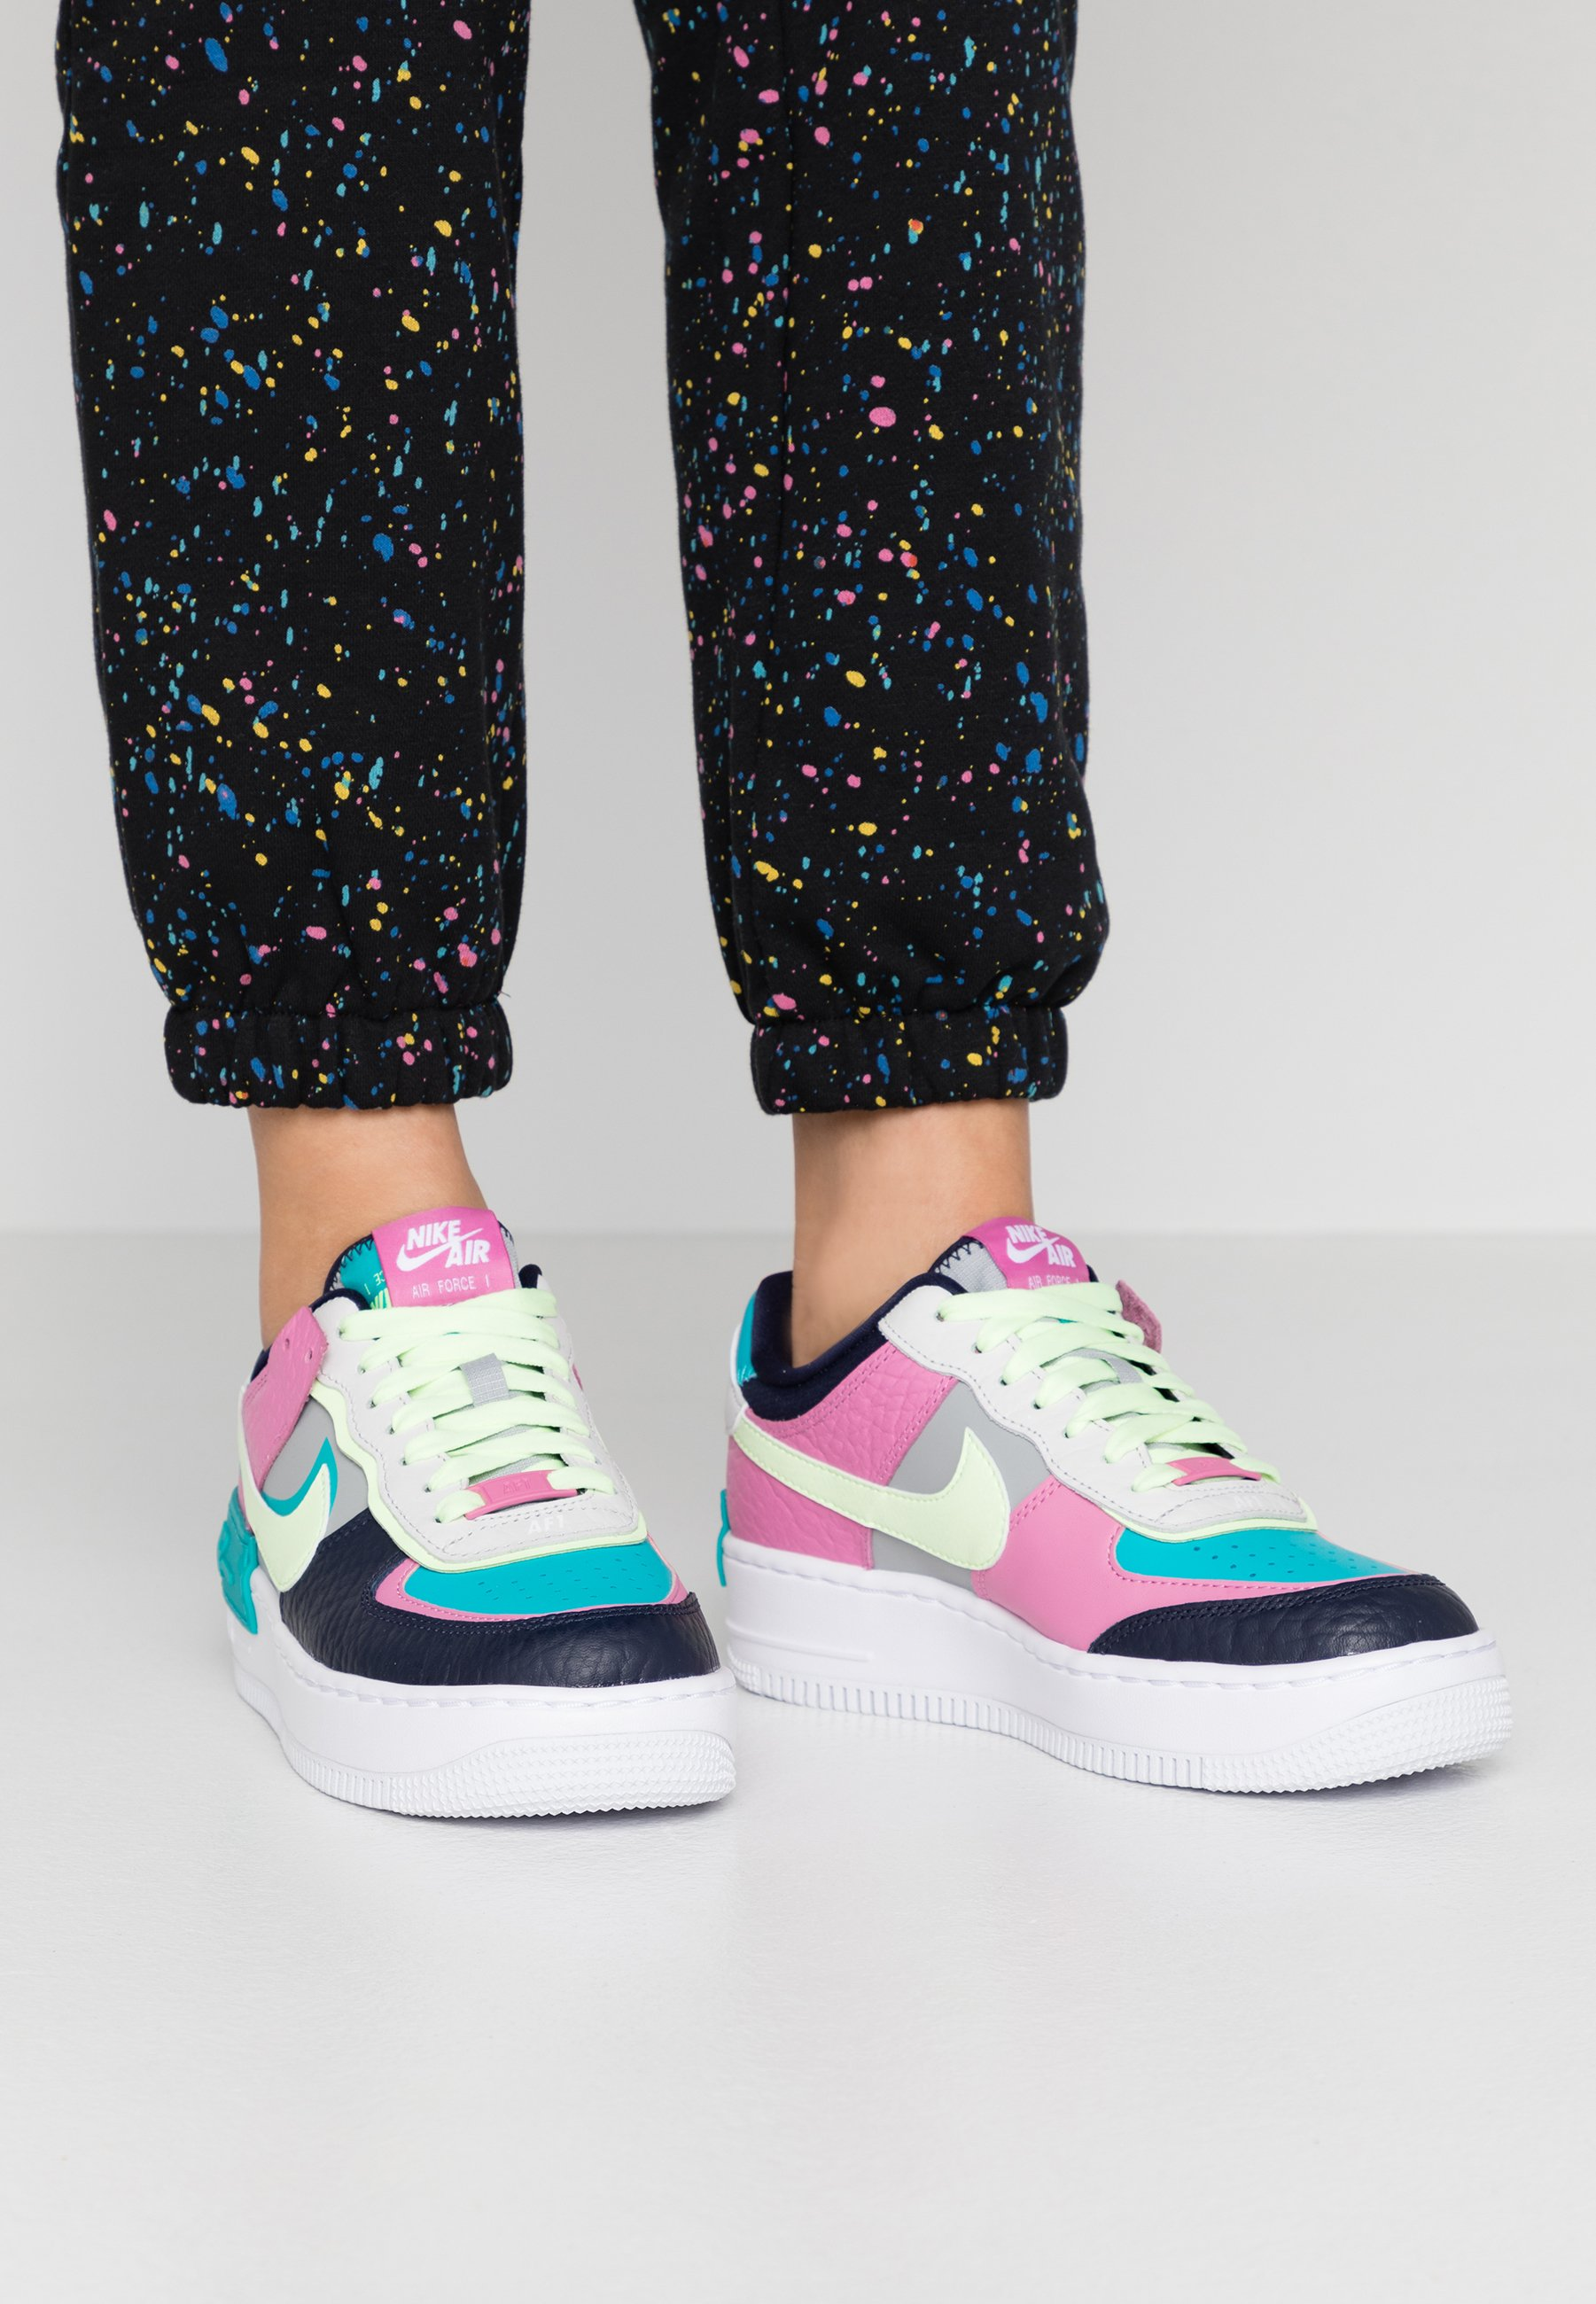 Nike Sportswear Air Force 1 Shadow Trainers Light Smoke Grey Barely Volt Oracle Aqua Grey Zalando Ie The nike air force 1 shadow comes dressed in a white, atomic pink and sail color combination. air force 1 shadow trainers light smoke grey barely volt oracle aqua